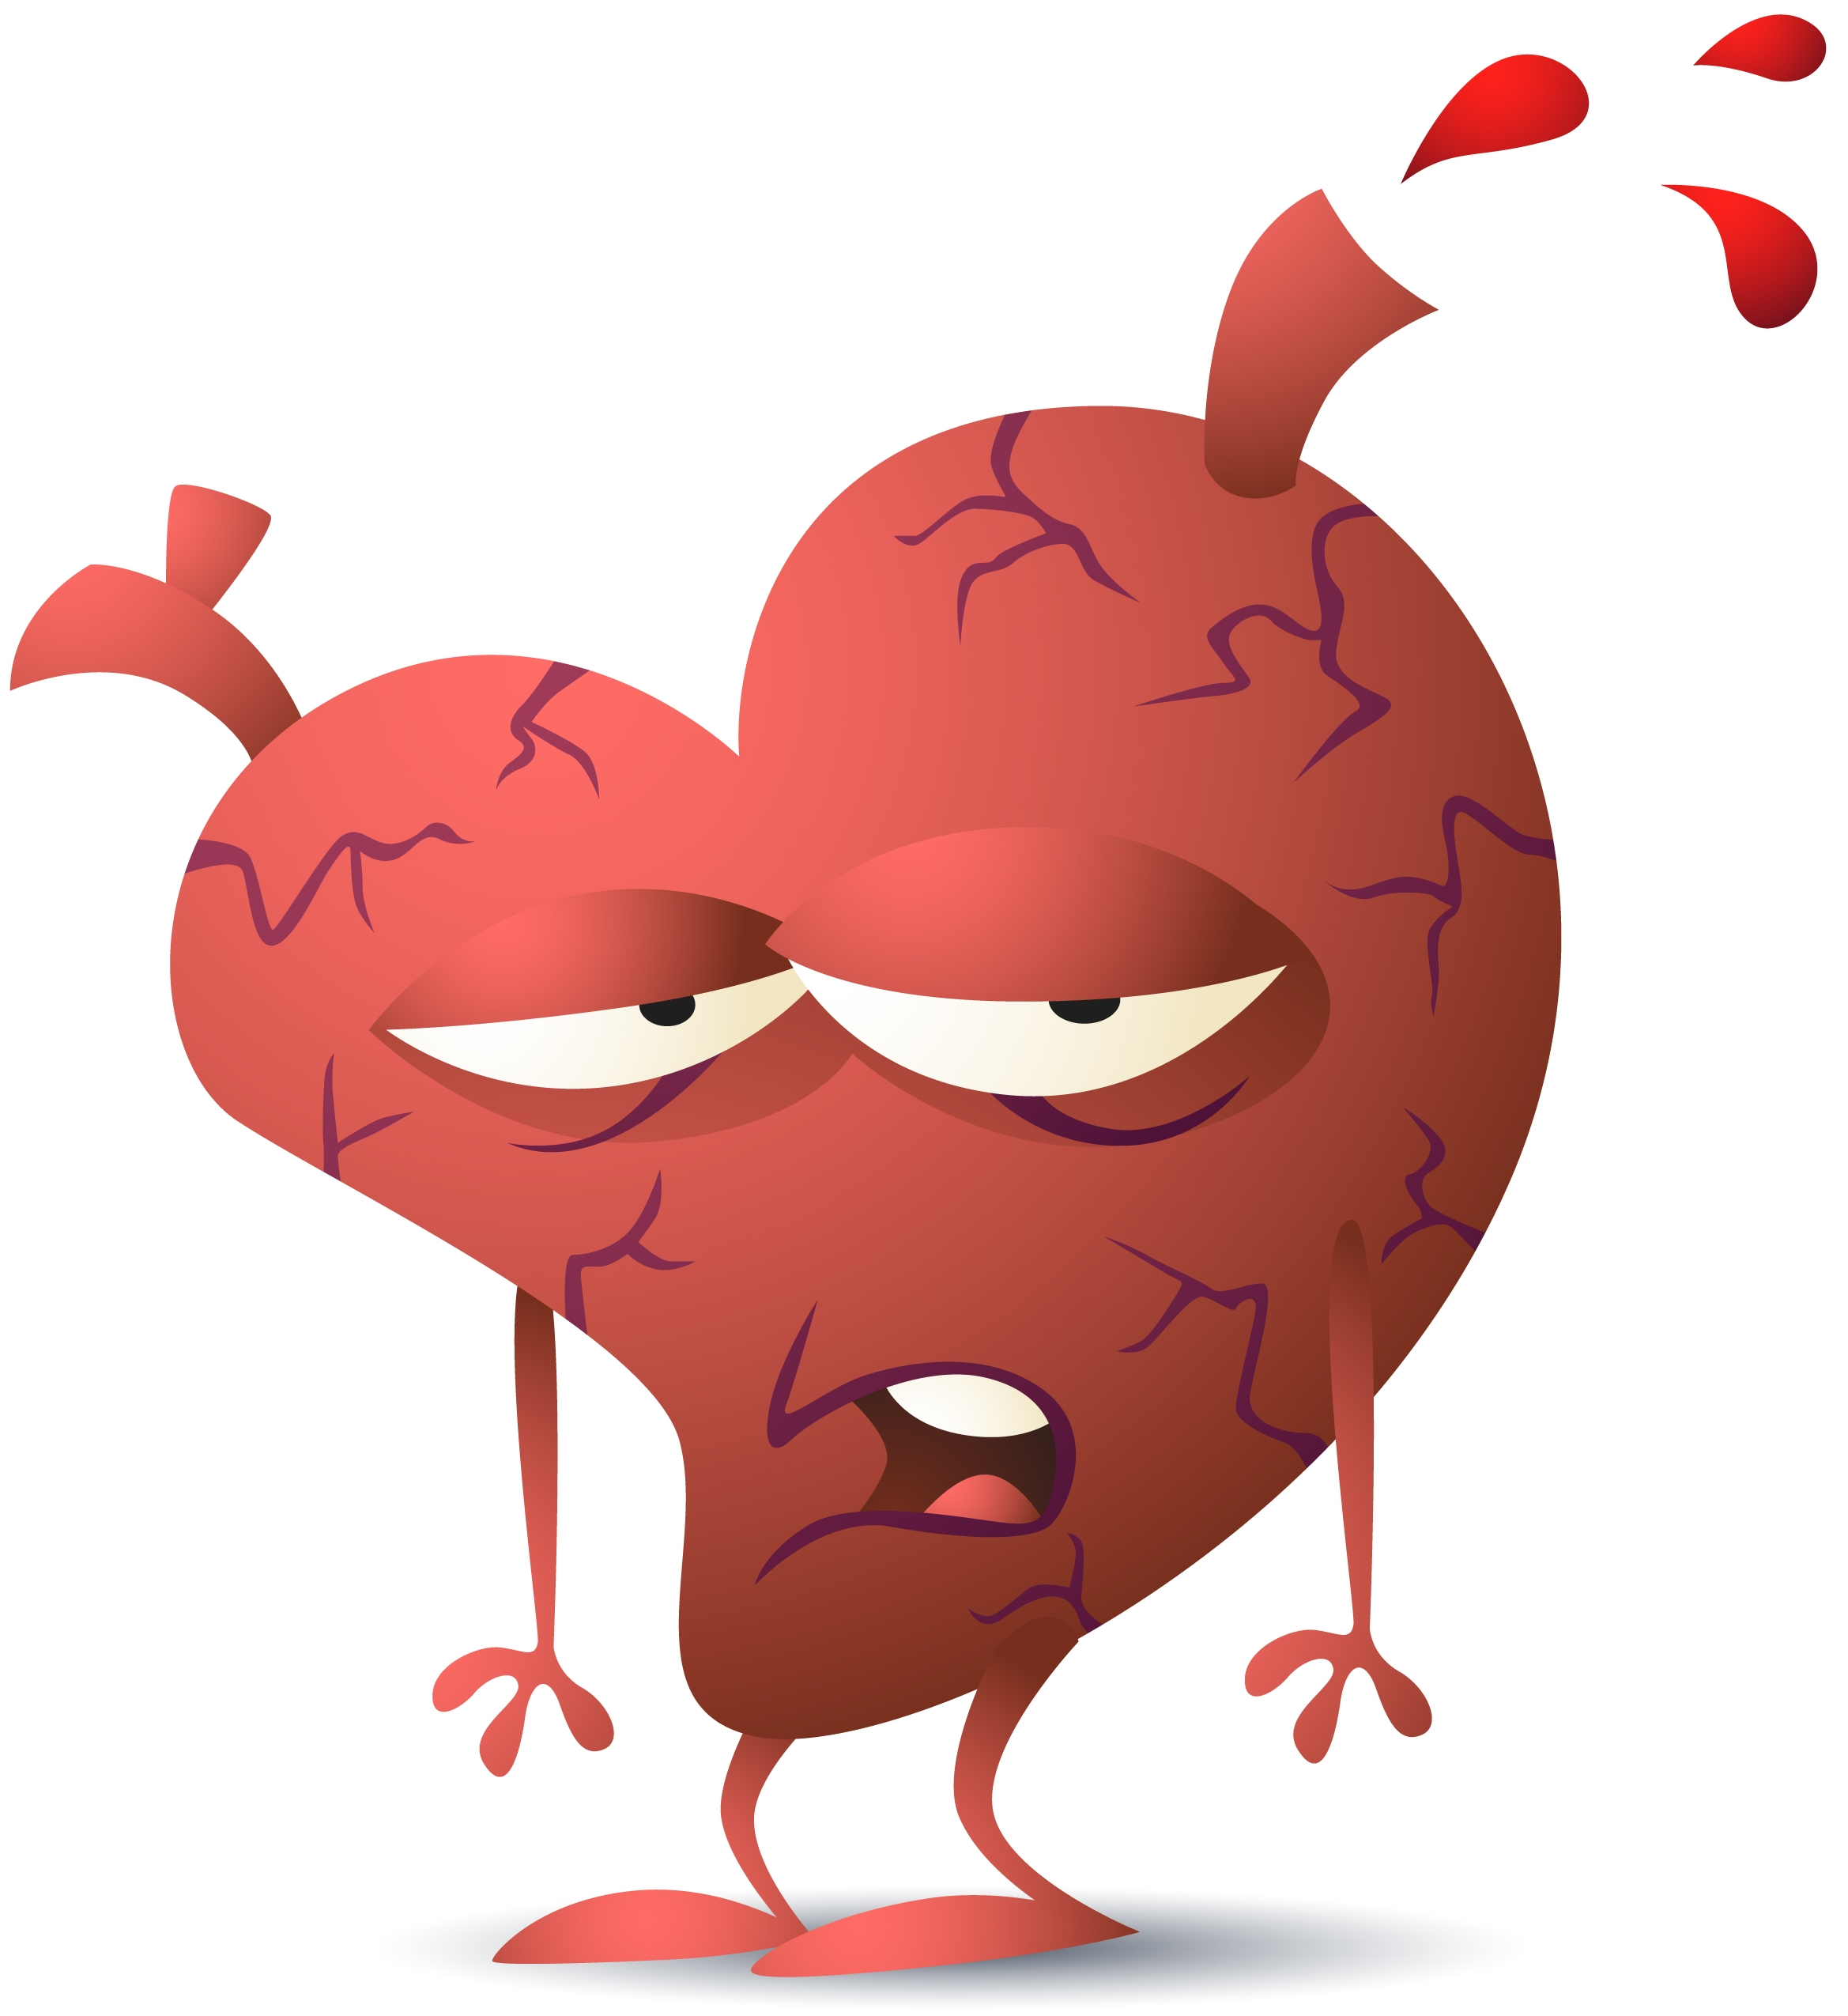 Causes Heart Disease Clip Art.